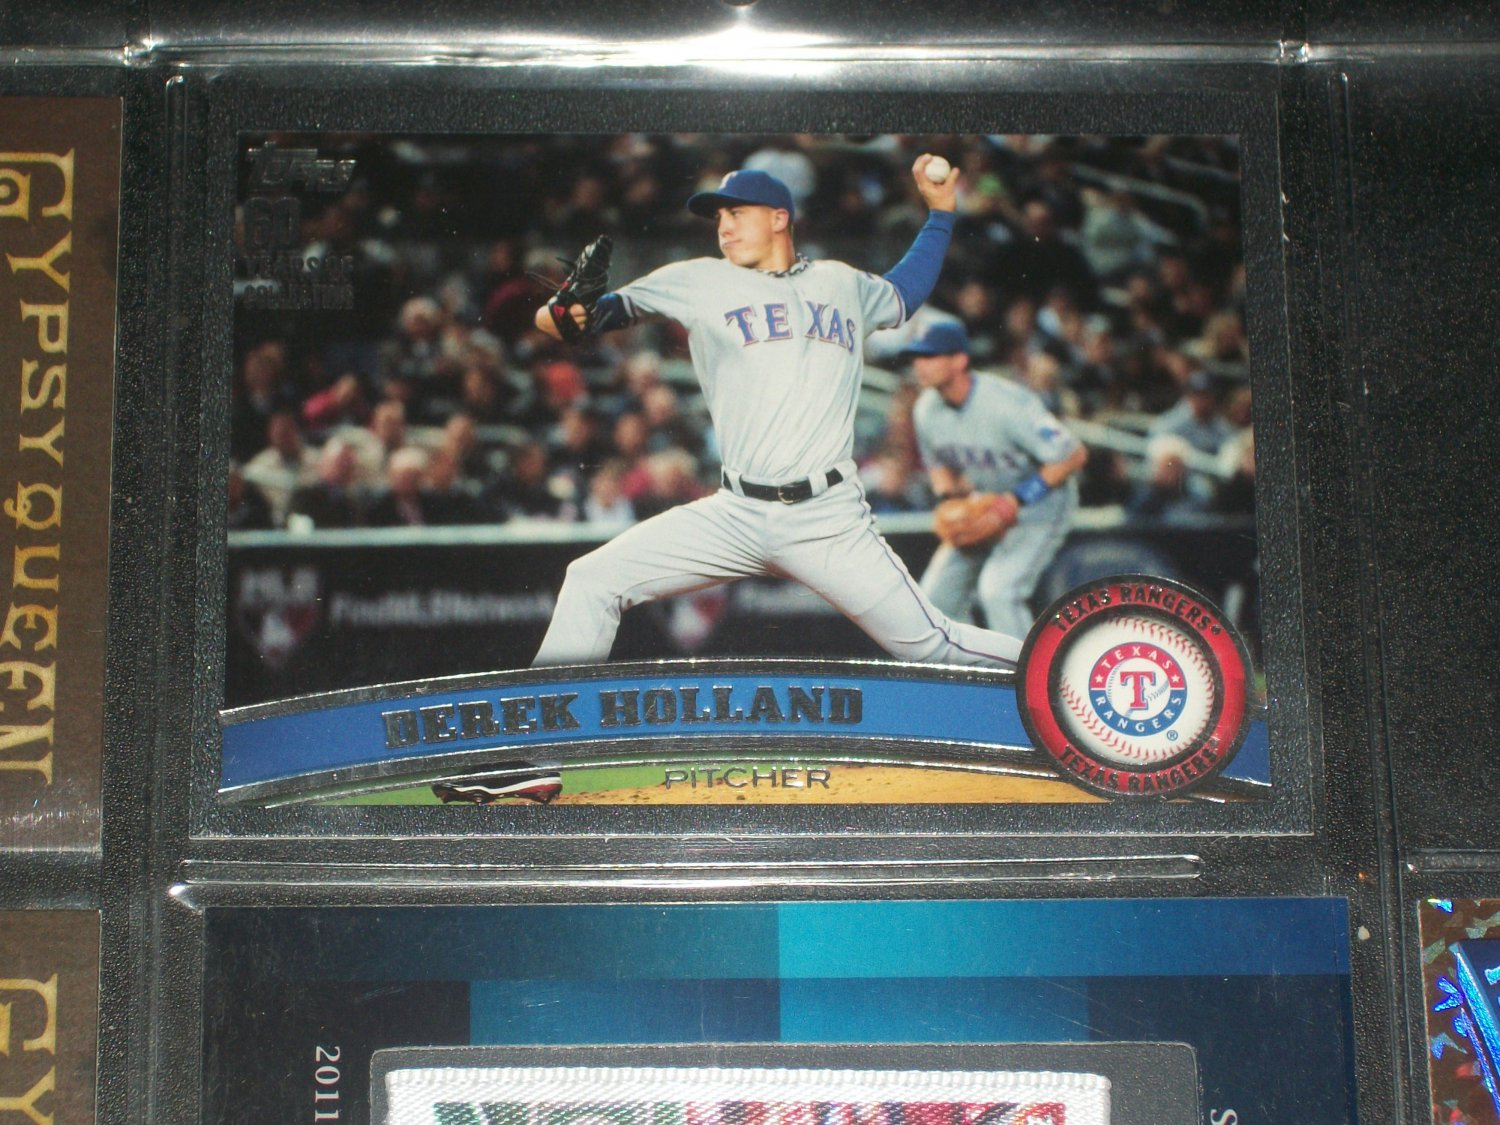 Derek Holland 2011 Topps Baseball Card-